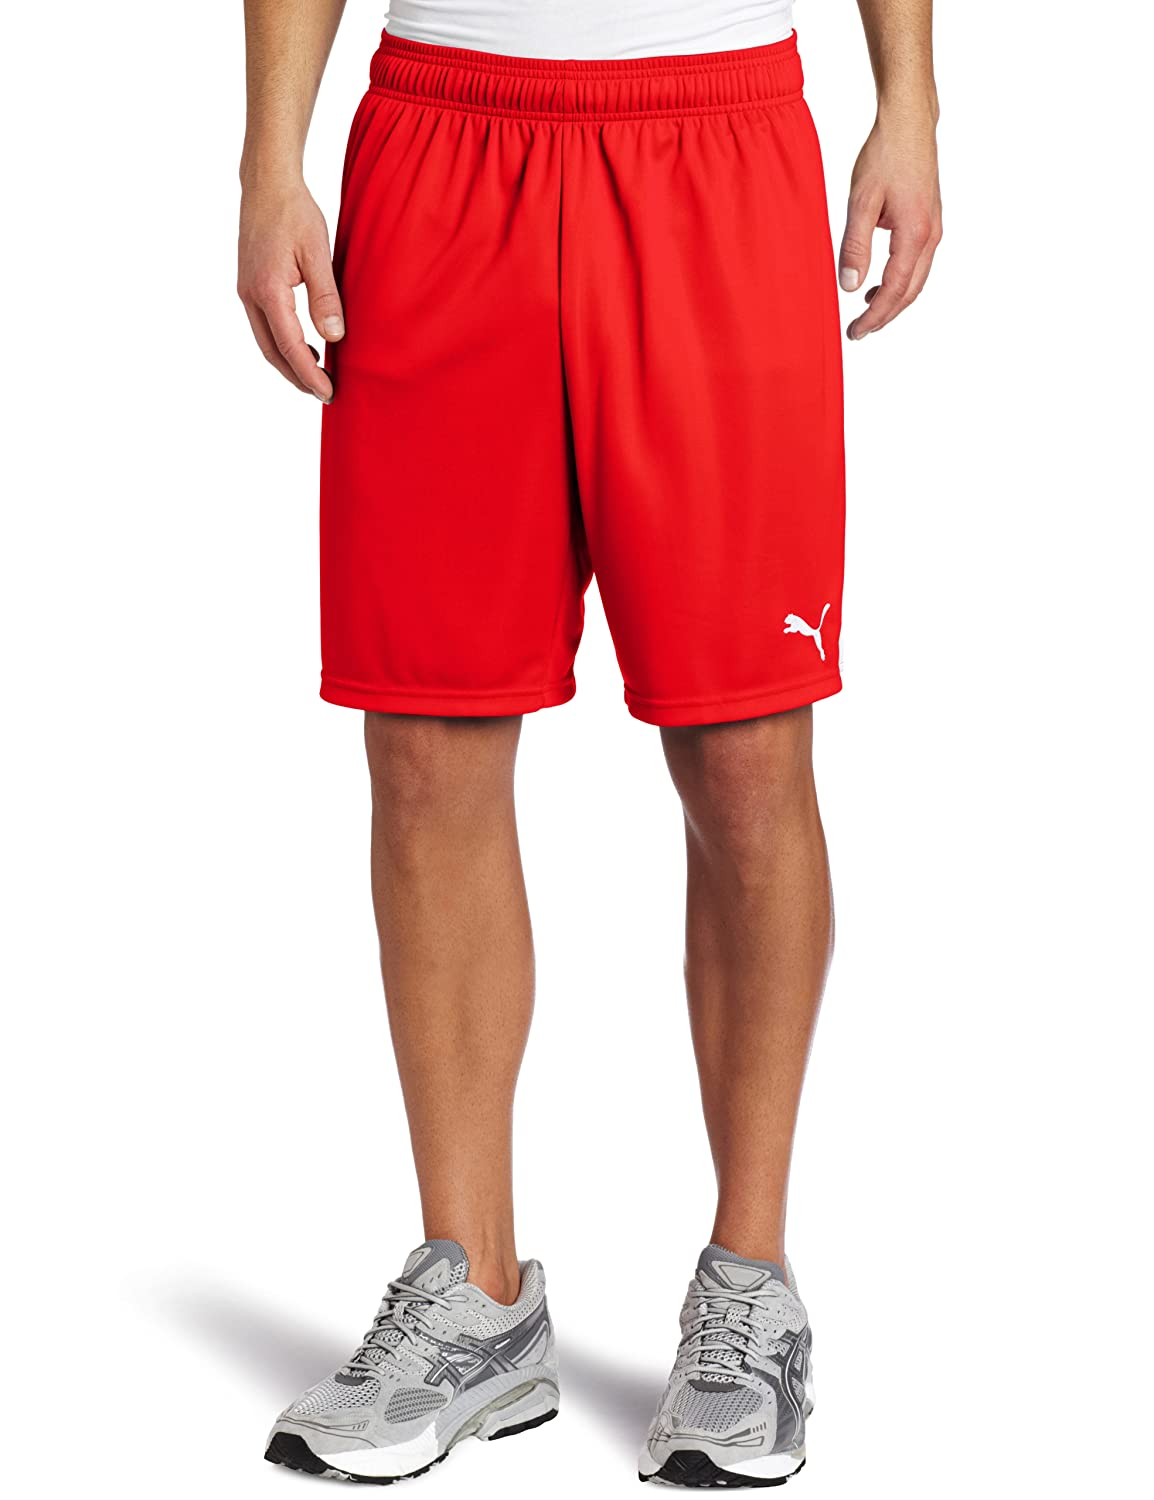 PUMA Team Shorts without Inner Slip, ROT-Weiß, Large